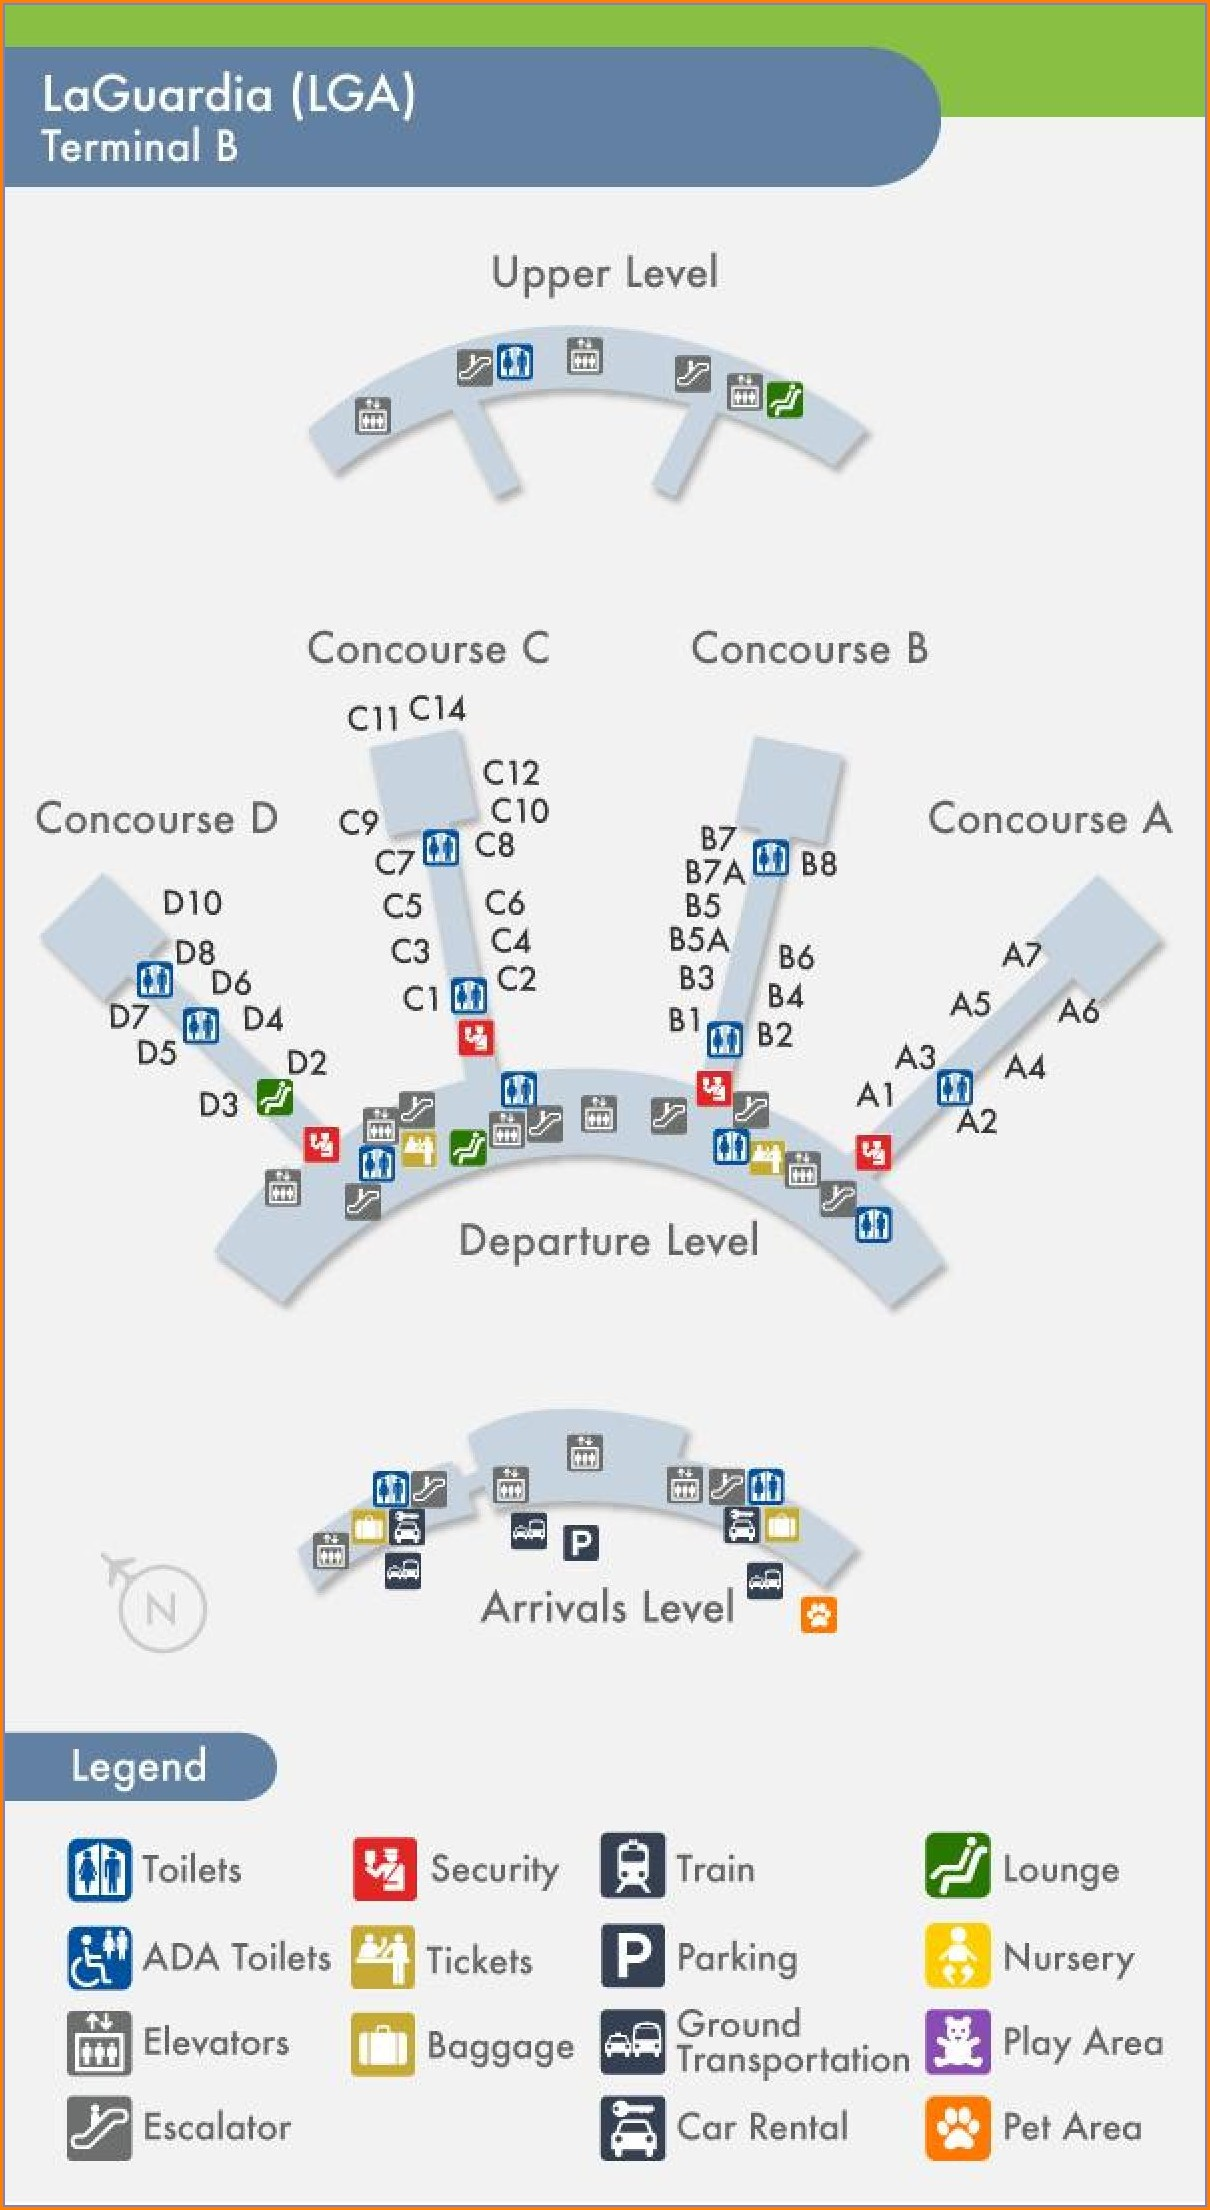 Lga Airport Terminal B Map